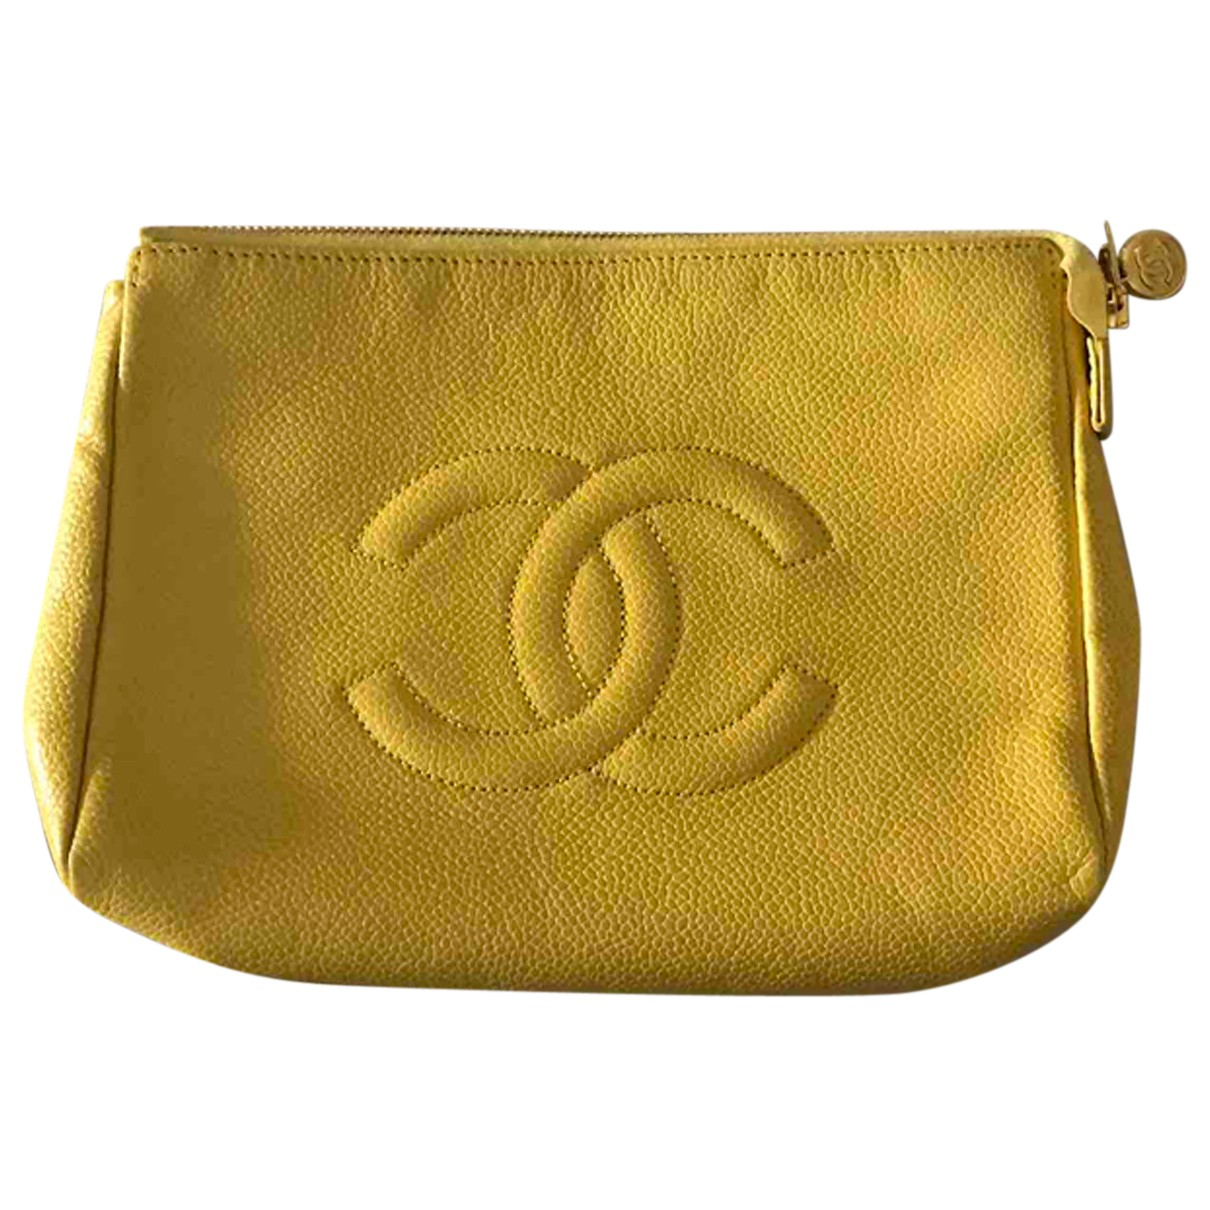 Chanel \N Clutch in  Gelb Leder